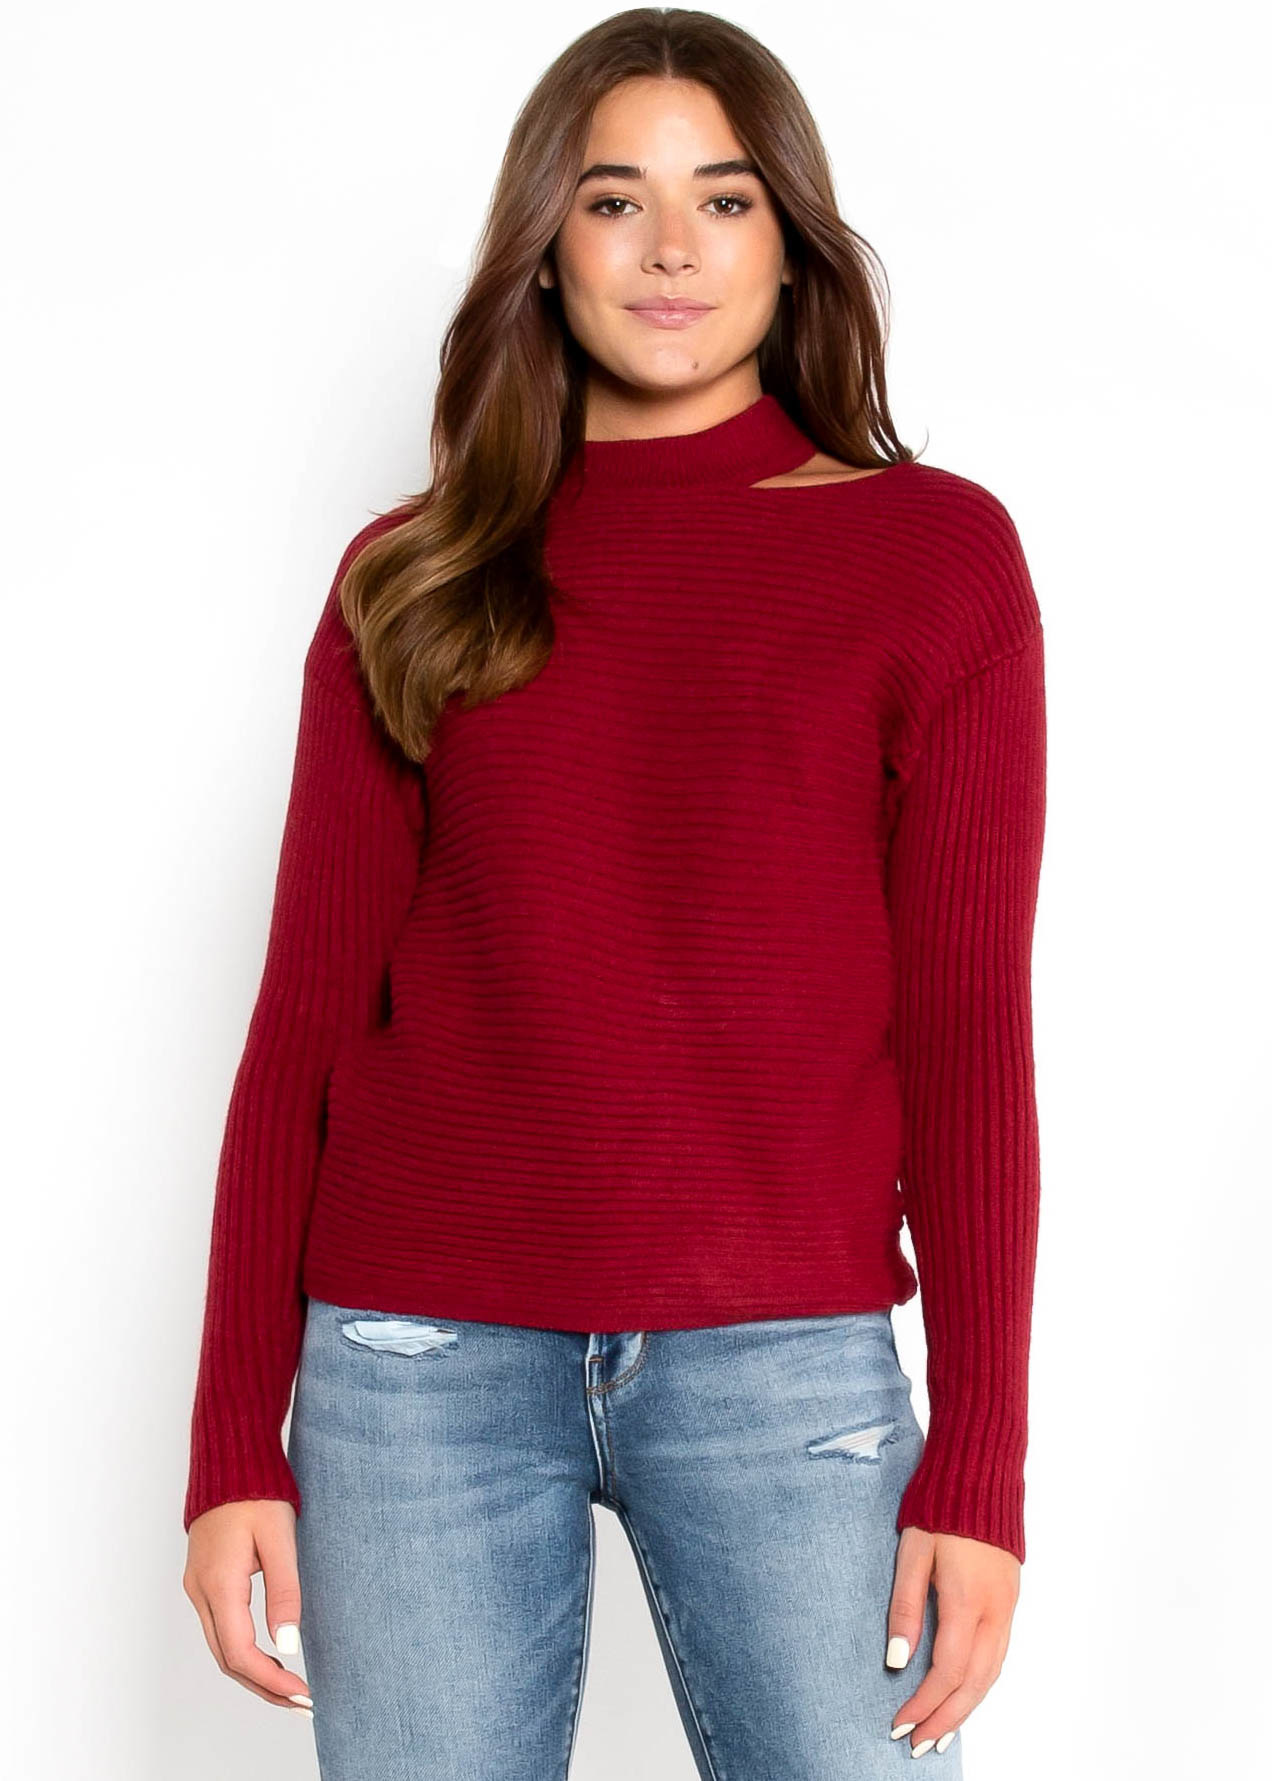 SOMEBODY TO LOVE SWEATER - RED